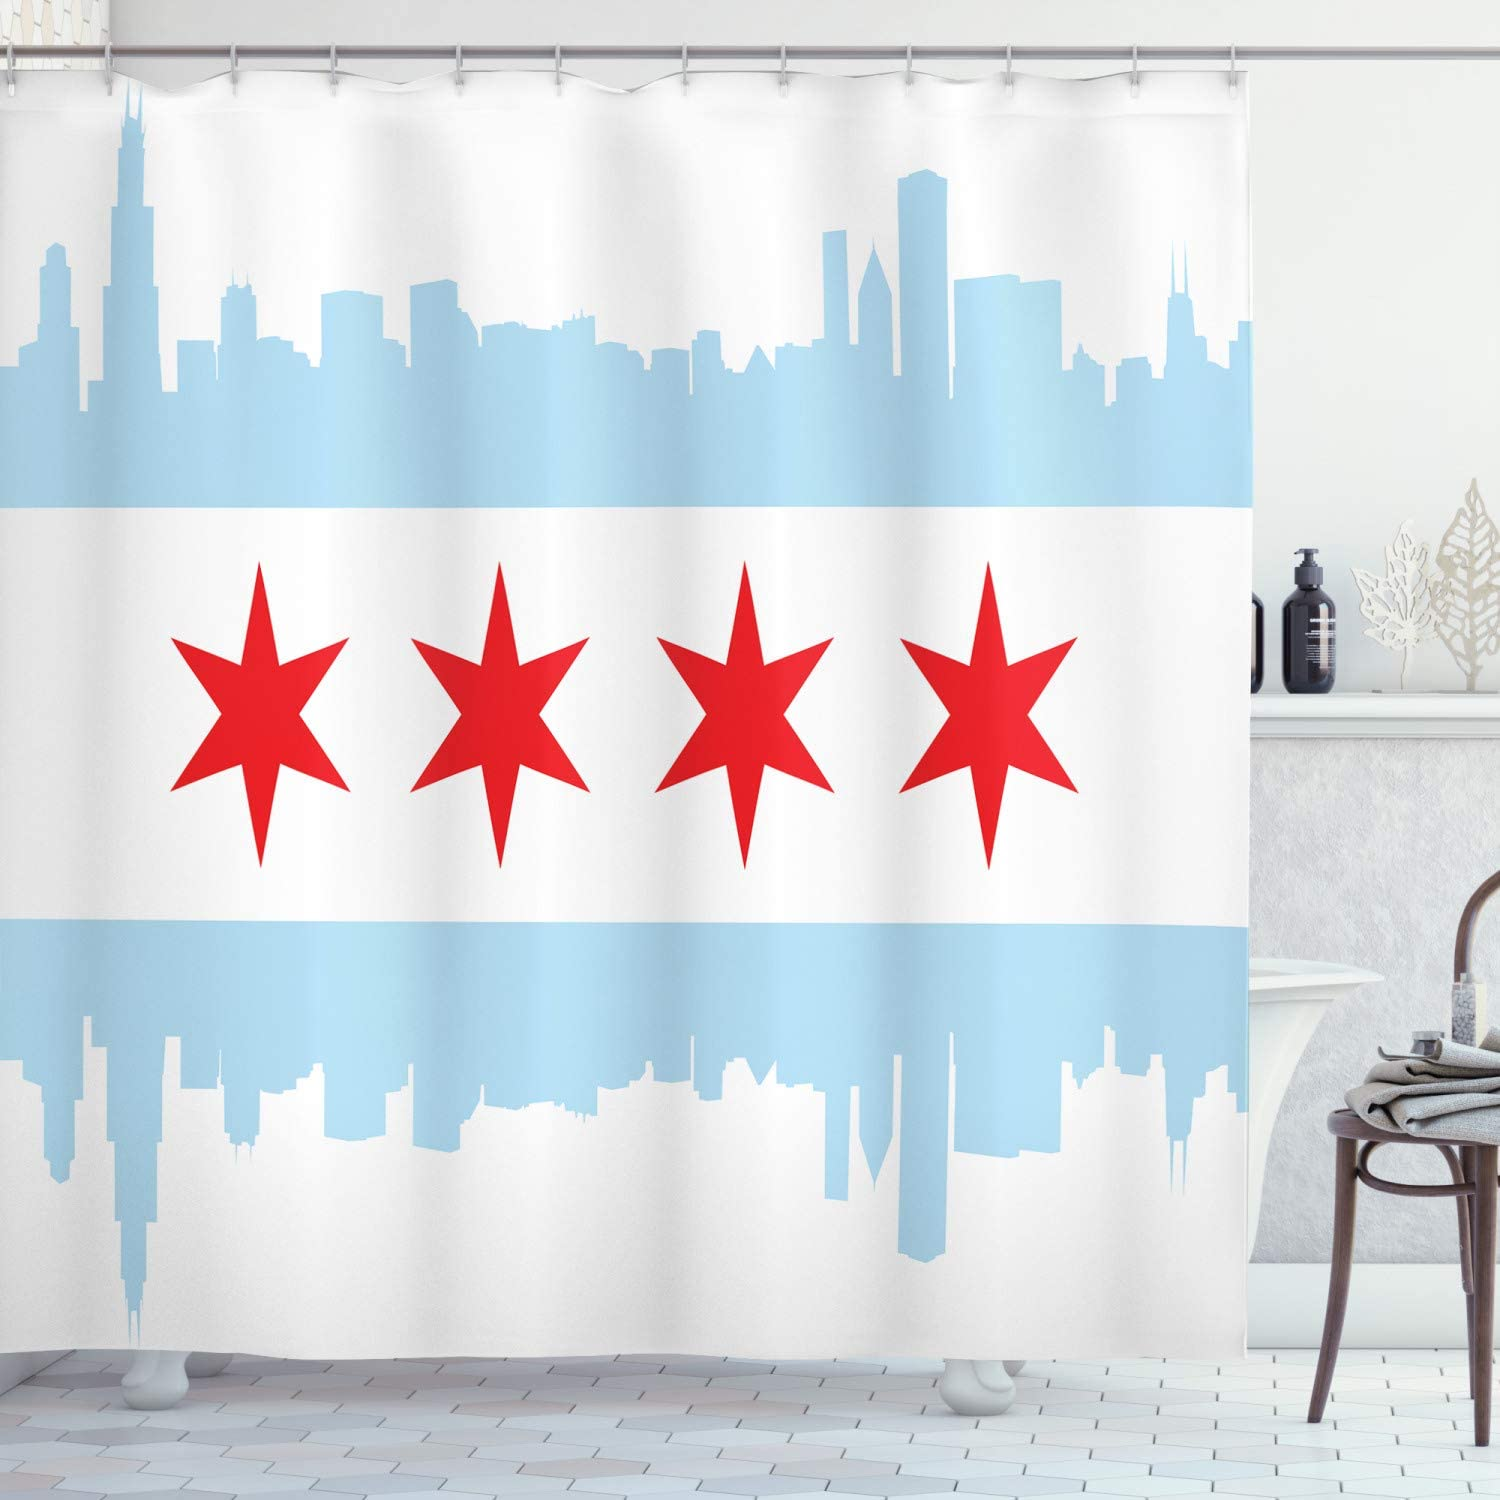 Ambesonne Chicago Skyline Shower Curtain, City of Chicago Flag with High Rise Buildings Scenery National, Cloth Fabric Bathroom Decor Set with Hooks, 70